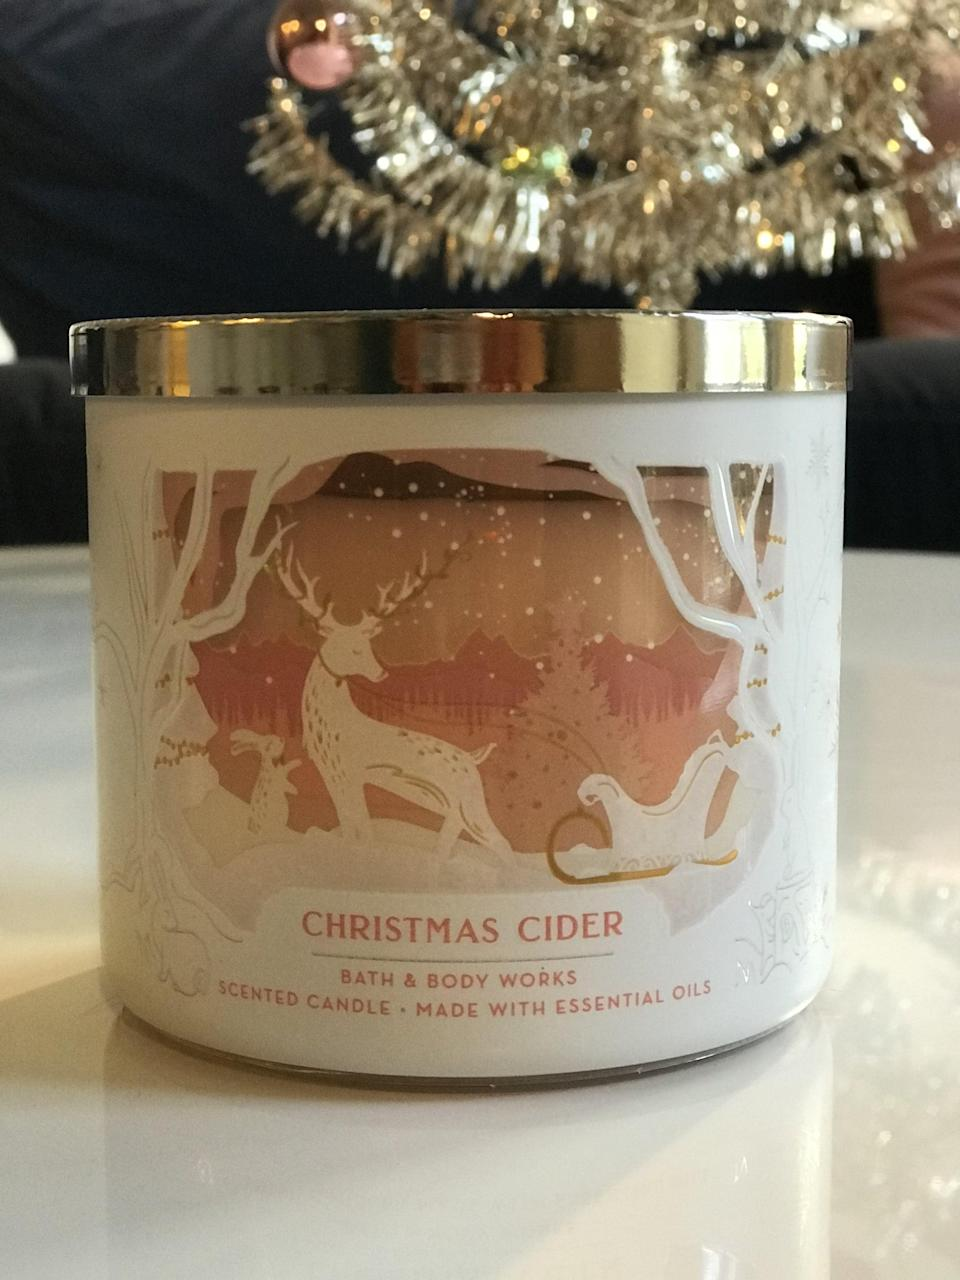 <p><span>3-Wick Candle</span> ($15, originally $25)</p> <p><strong>What It Smells Like:</strong> A hot spicy drink in a big mug. The cinnamon isn't too overwhelming.</p>